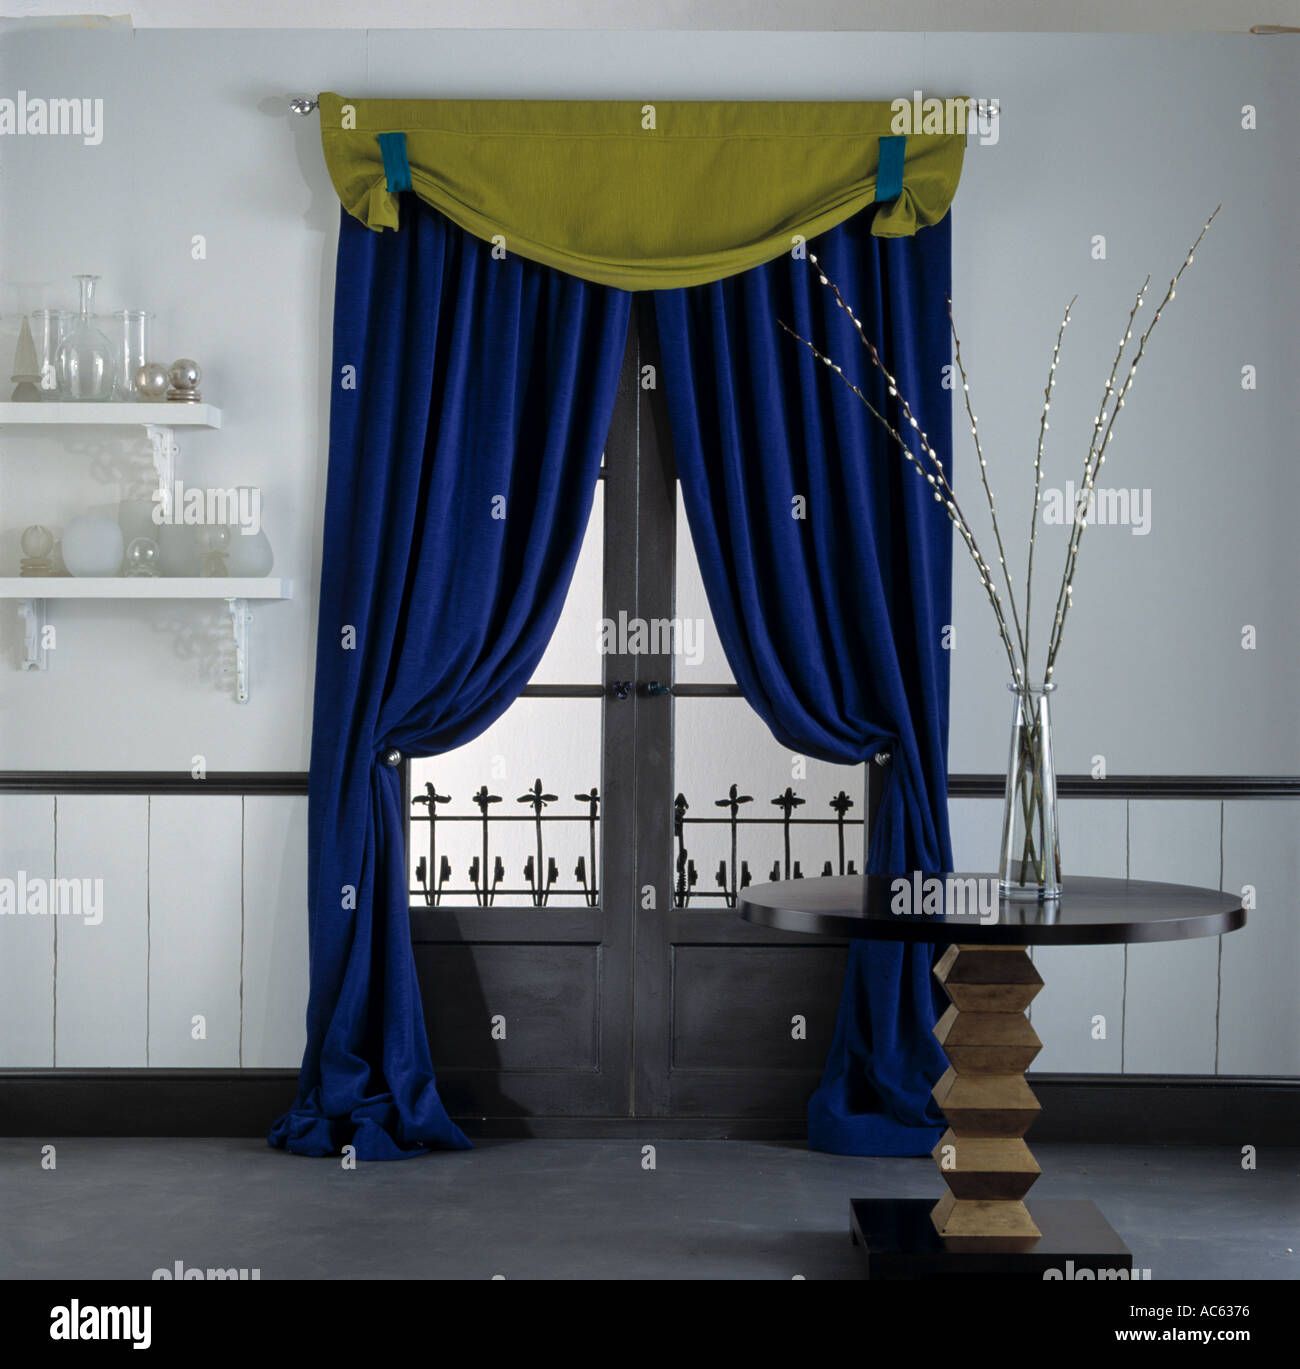 Cobalt blue window treatments - Stock Photo Yellow Pelmet And Rich Blue Velvet Curtains On Window In Dining Room With Vase Of Pussy Willows On Small Circular Pedestal Table